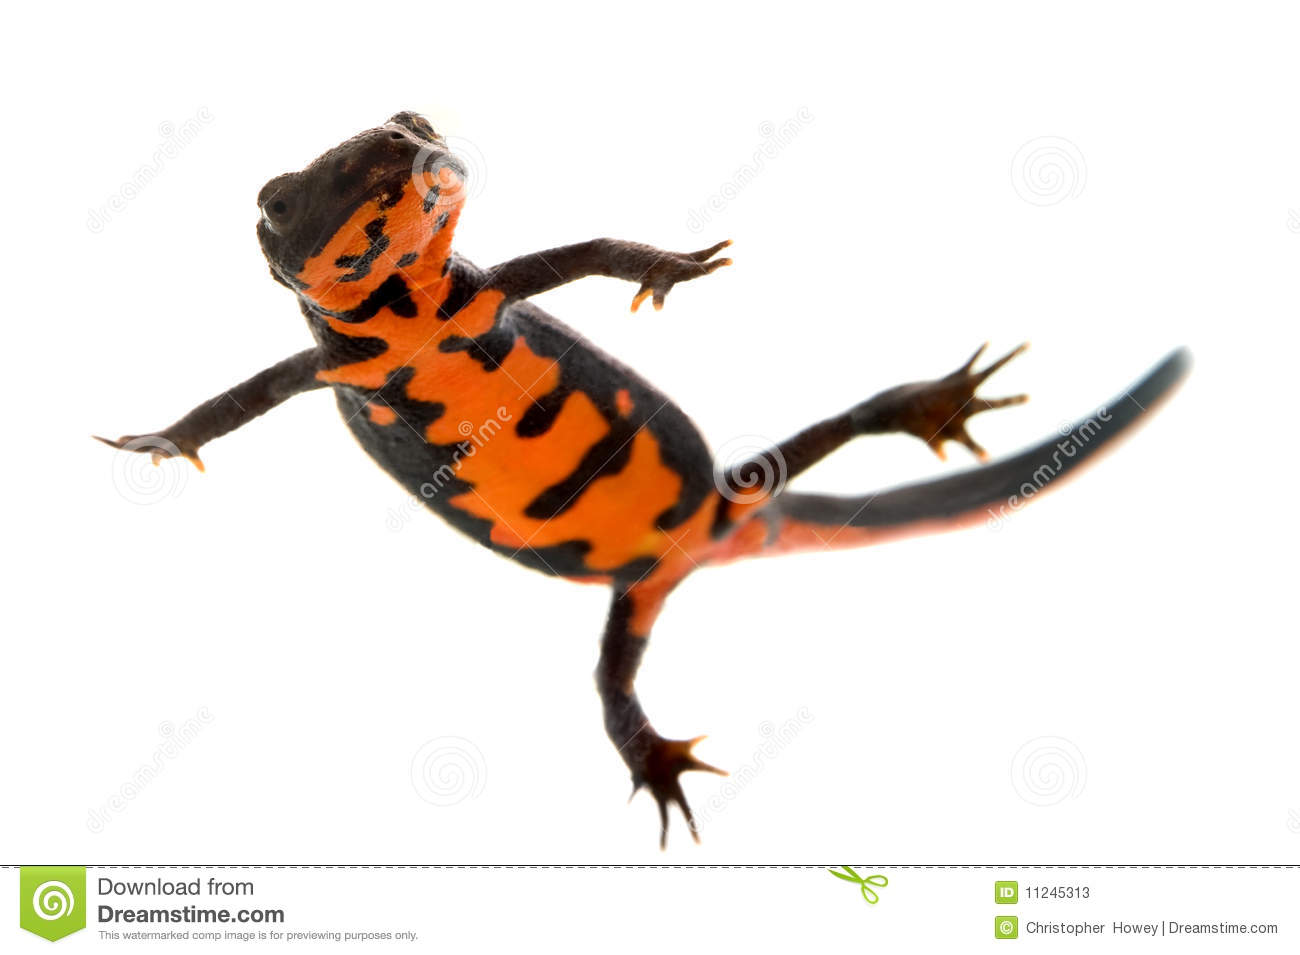 Red Bellied Newt clipart #20, Download drawings